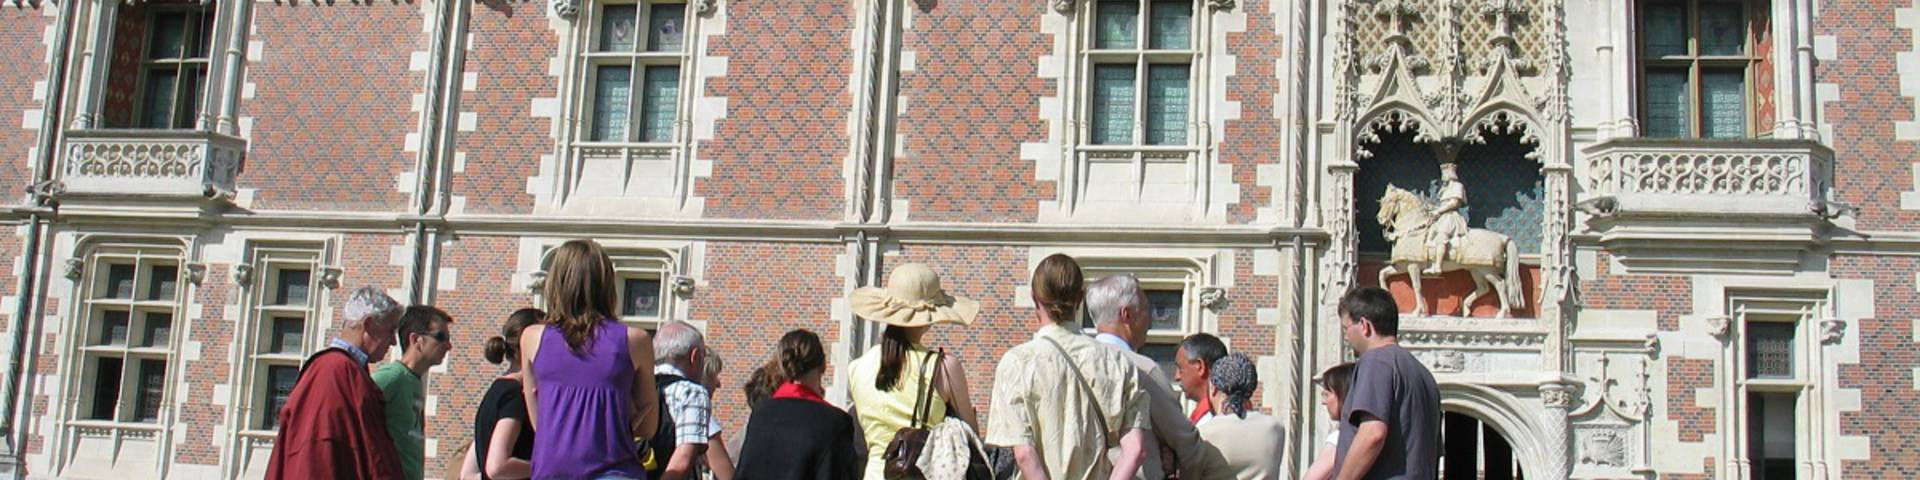 Tourist group with a guide on the square of the castle of Blois. © OTBC